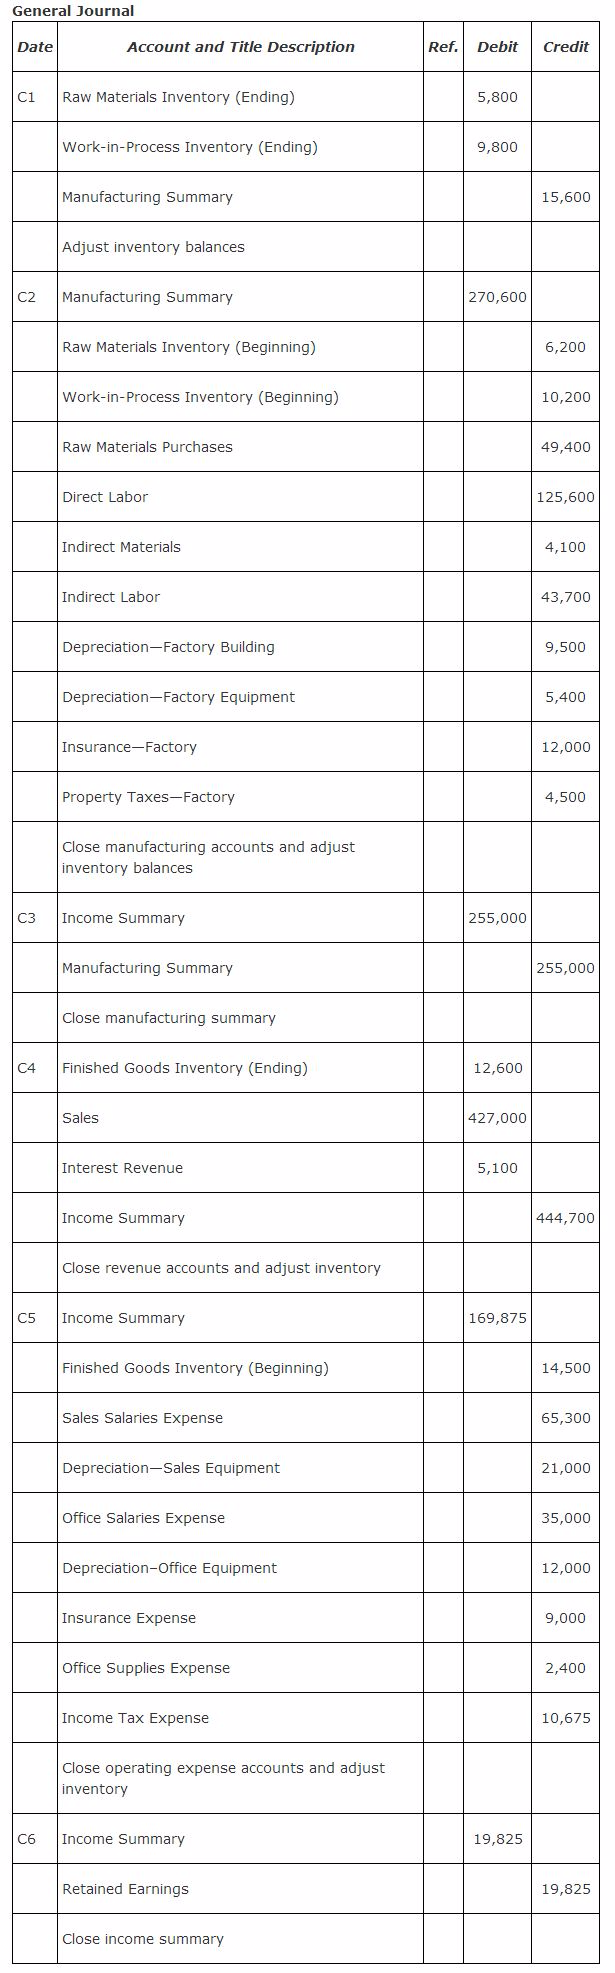 https://sdimg.blob.core.windows.net/images/ShuleDirect/43450/Original/Accounting-Accounting-Principles-2-Accounting-by-Manufacturing-Companies-Table-4_1473423061665.png